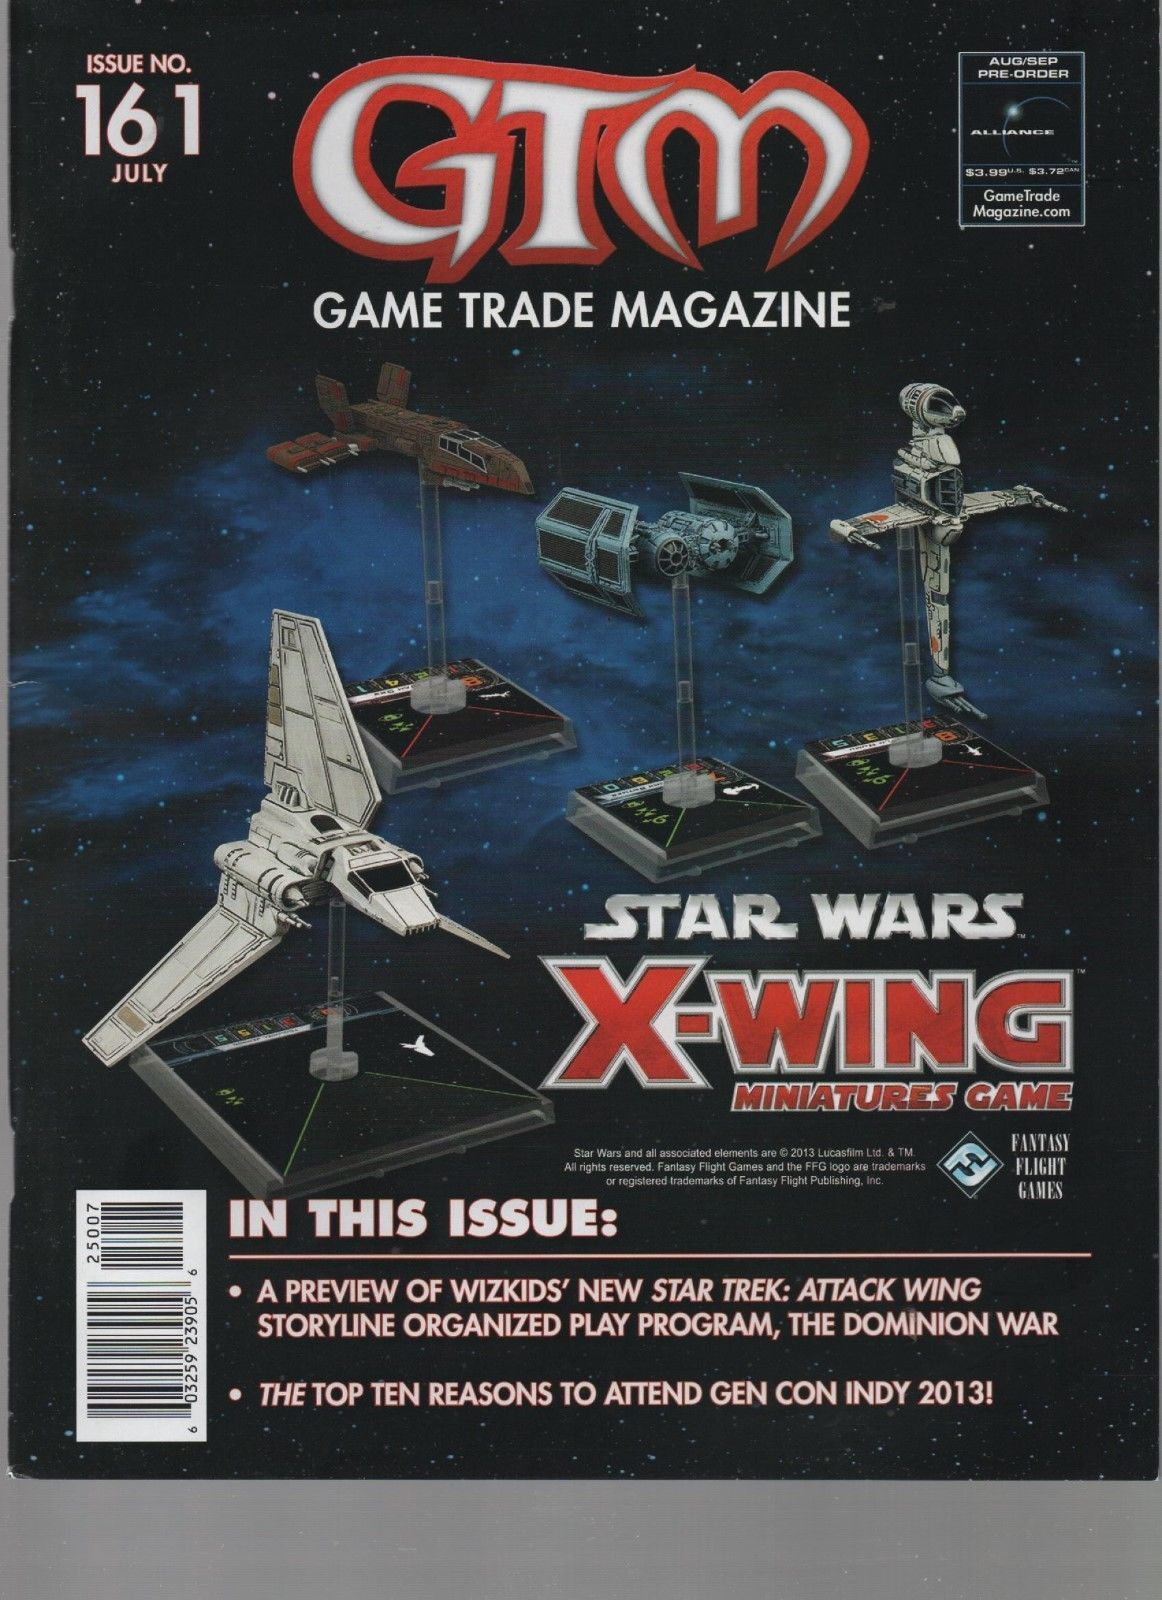 Game Trade Magazine #161 - July 2013 - Star Wars X-Wing, Star Trek: Attack Wing.